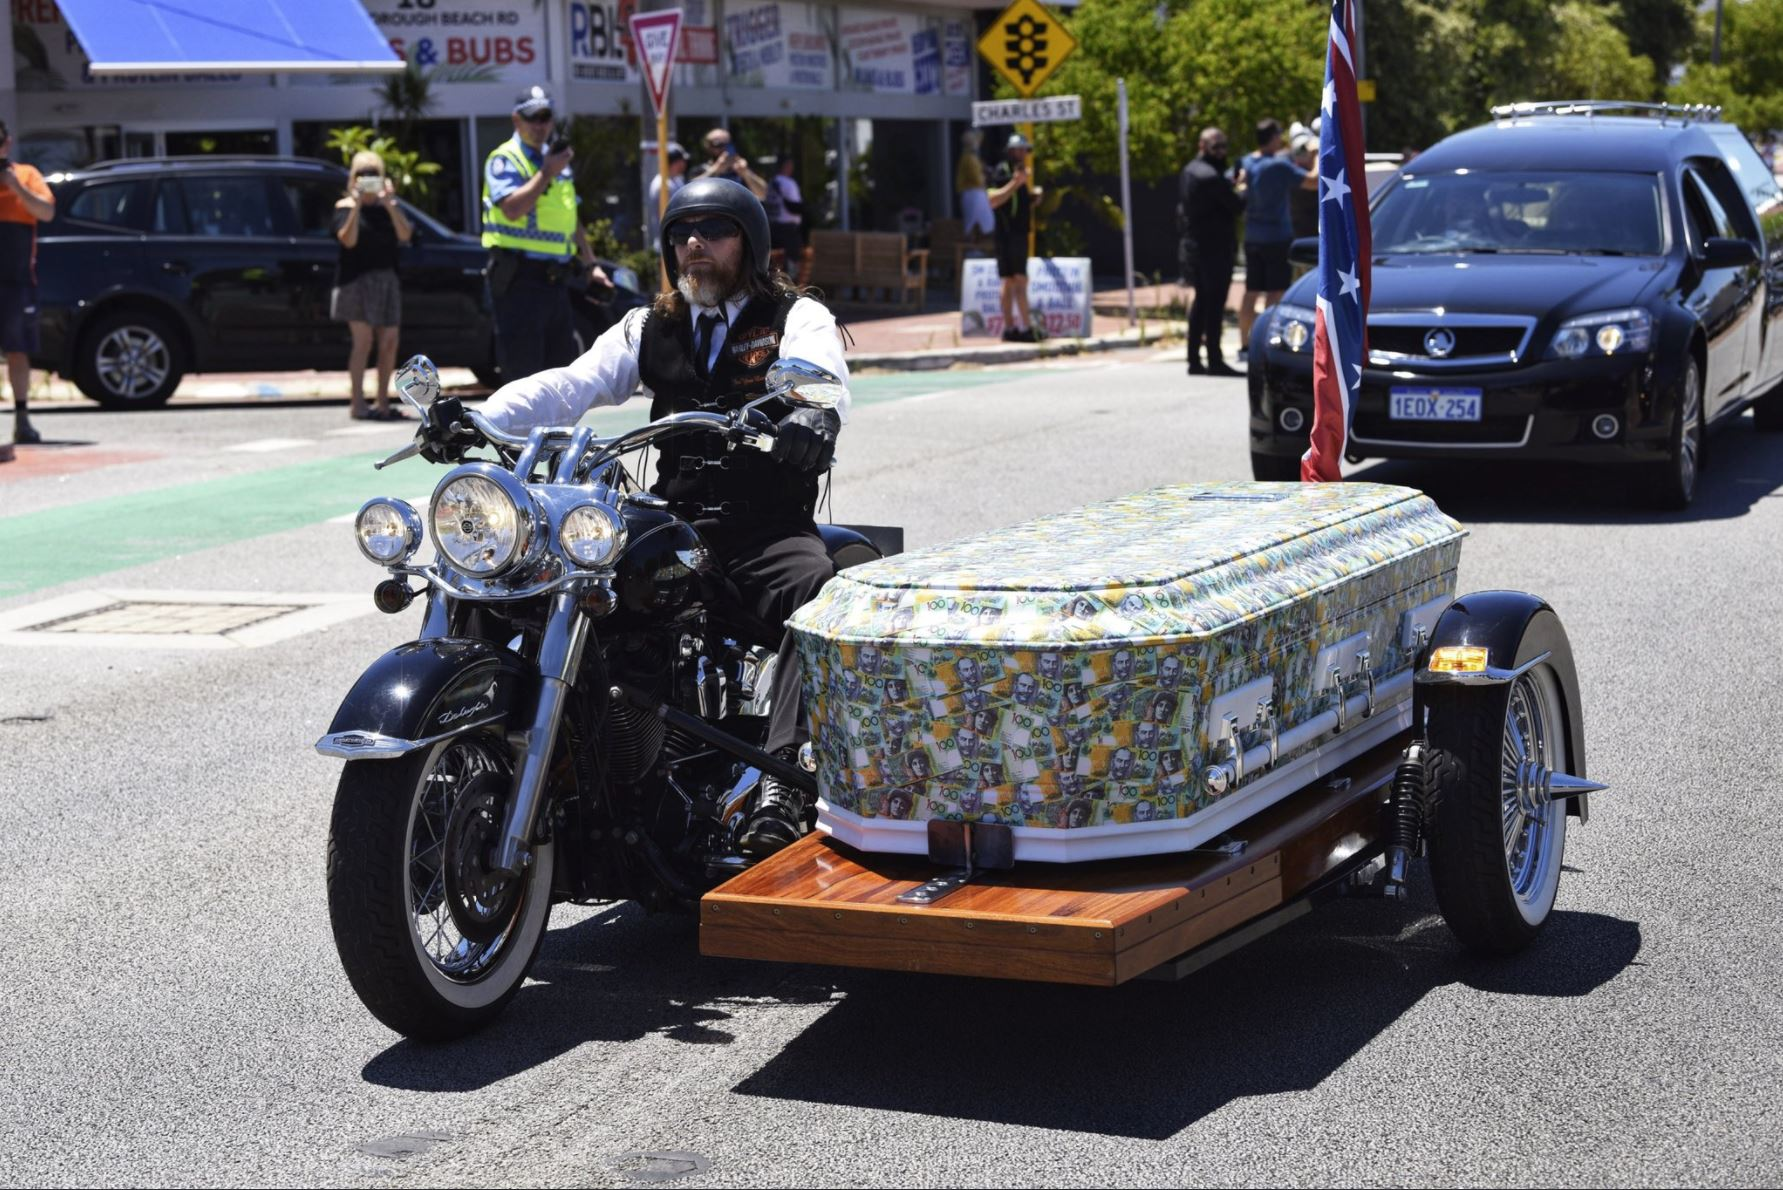 Article image for How to watch the funeral of slain Rebels bikie boss Nick Martin